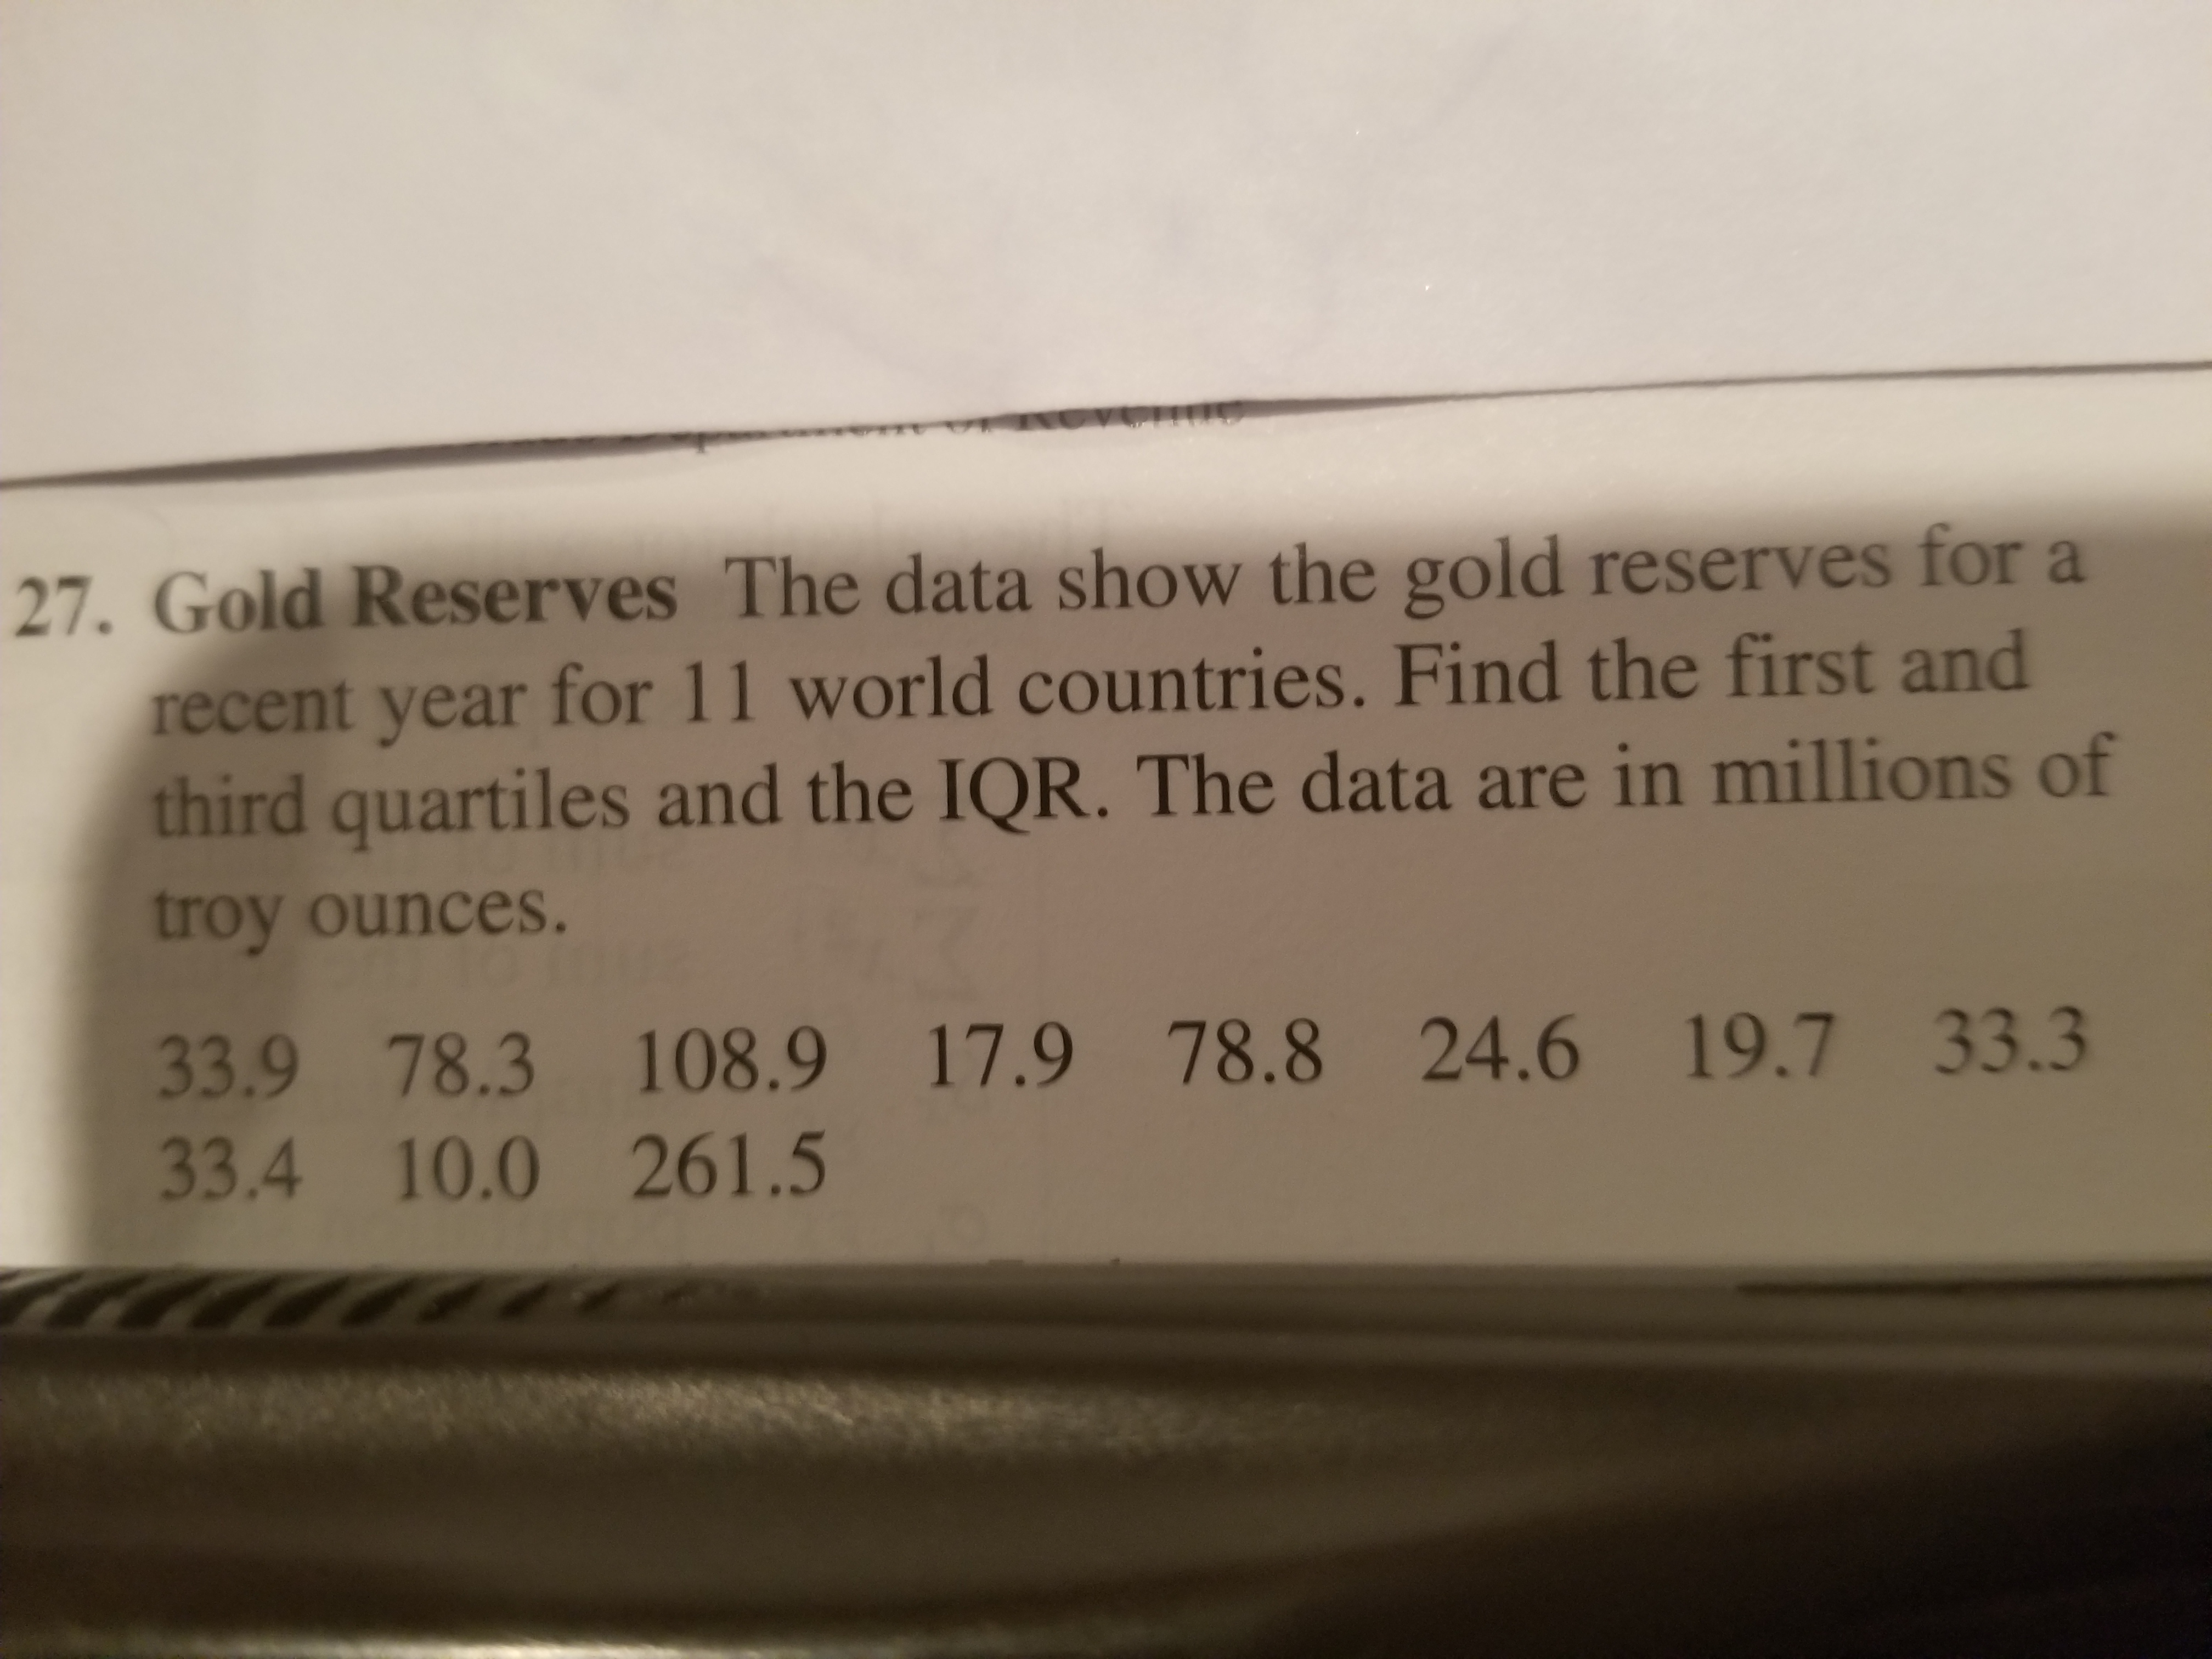 27. Gold Reserves The data show the gold reserves for a recent year for 11 world countries. Find the first and third quartiles and the IQR. The data are in millions of troy ounces. 33.9 78.3 108.9 17.9 78.8 24.6 19.7 33.3 33.4 10.0 261.5